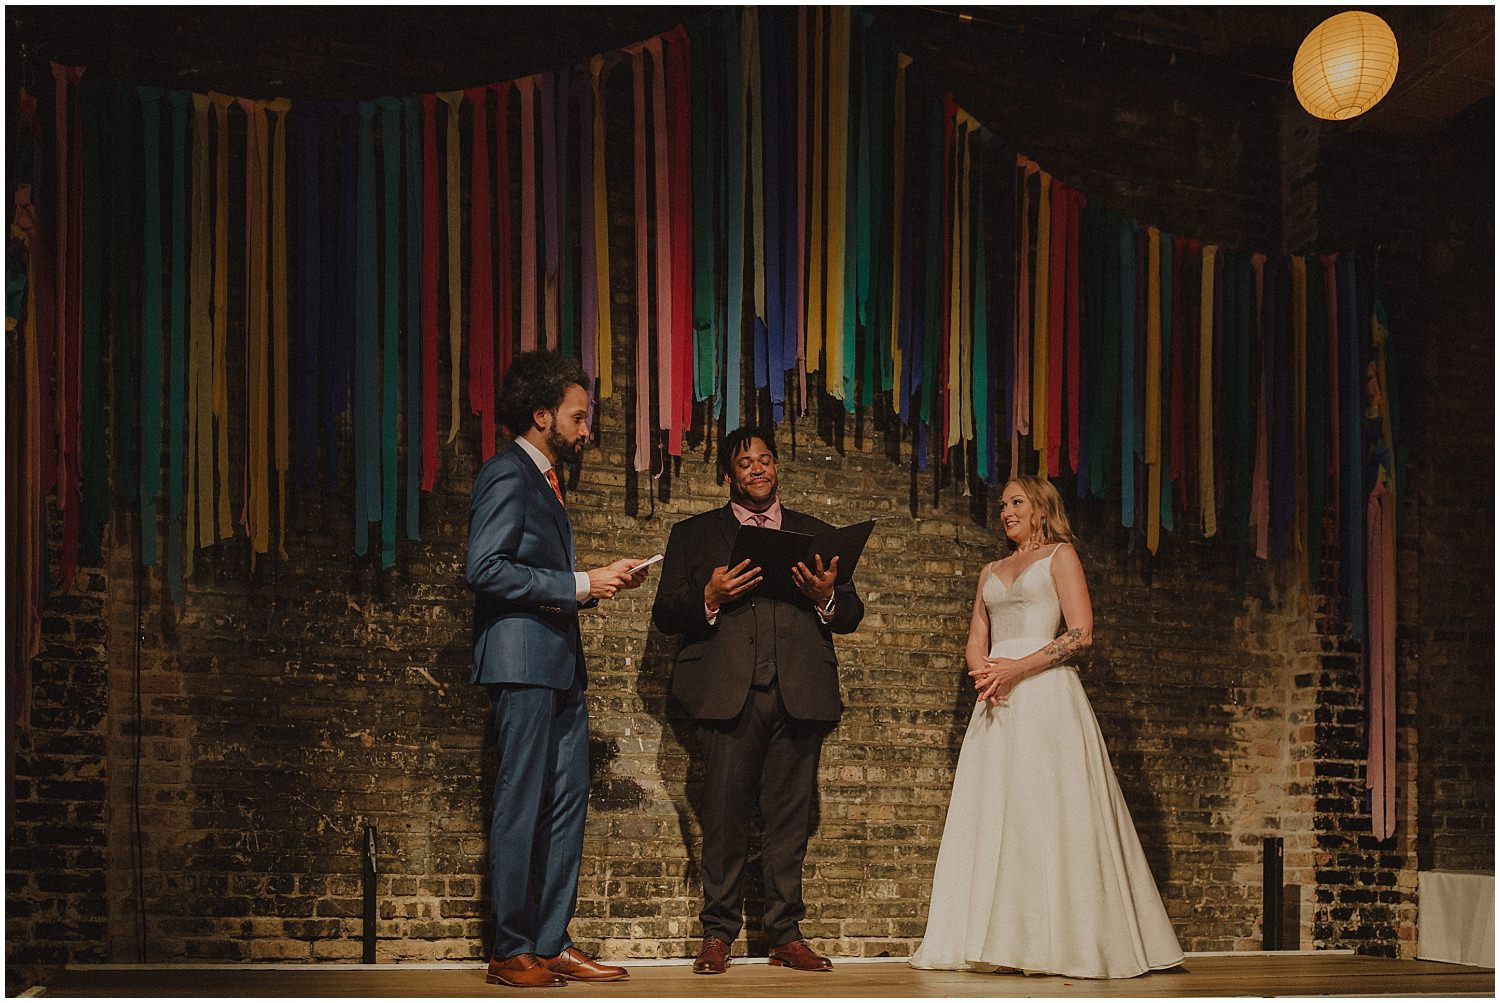 Intimate Filament Theater Chicago Wedding Vows Exchanged